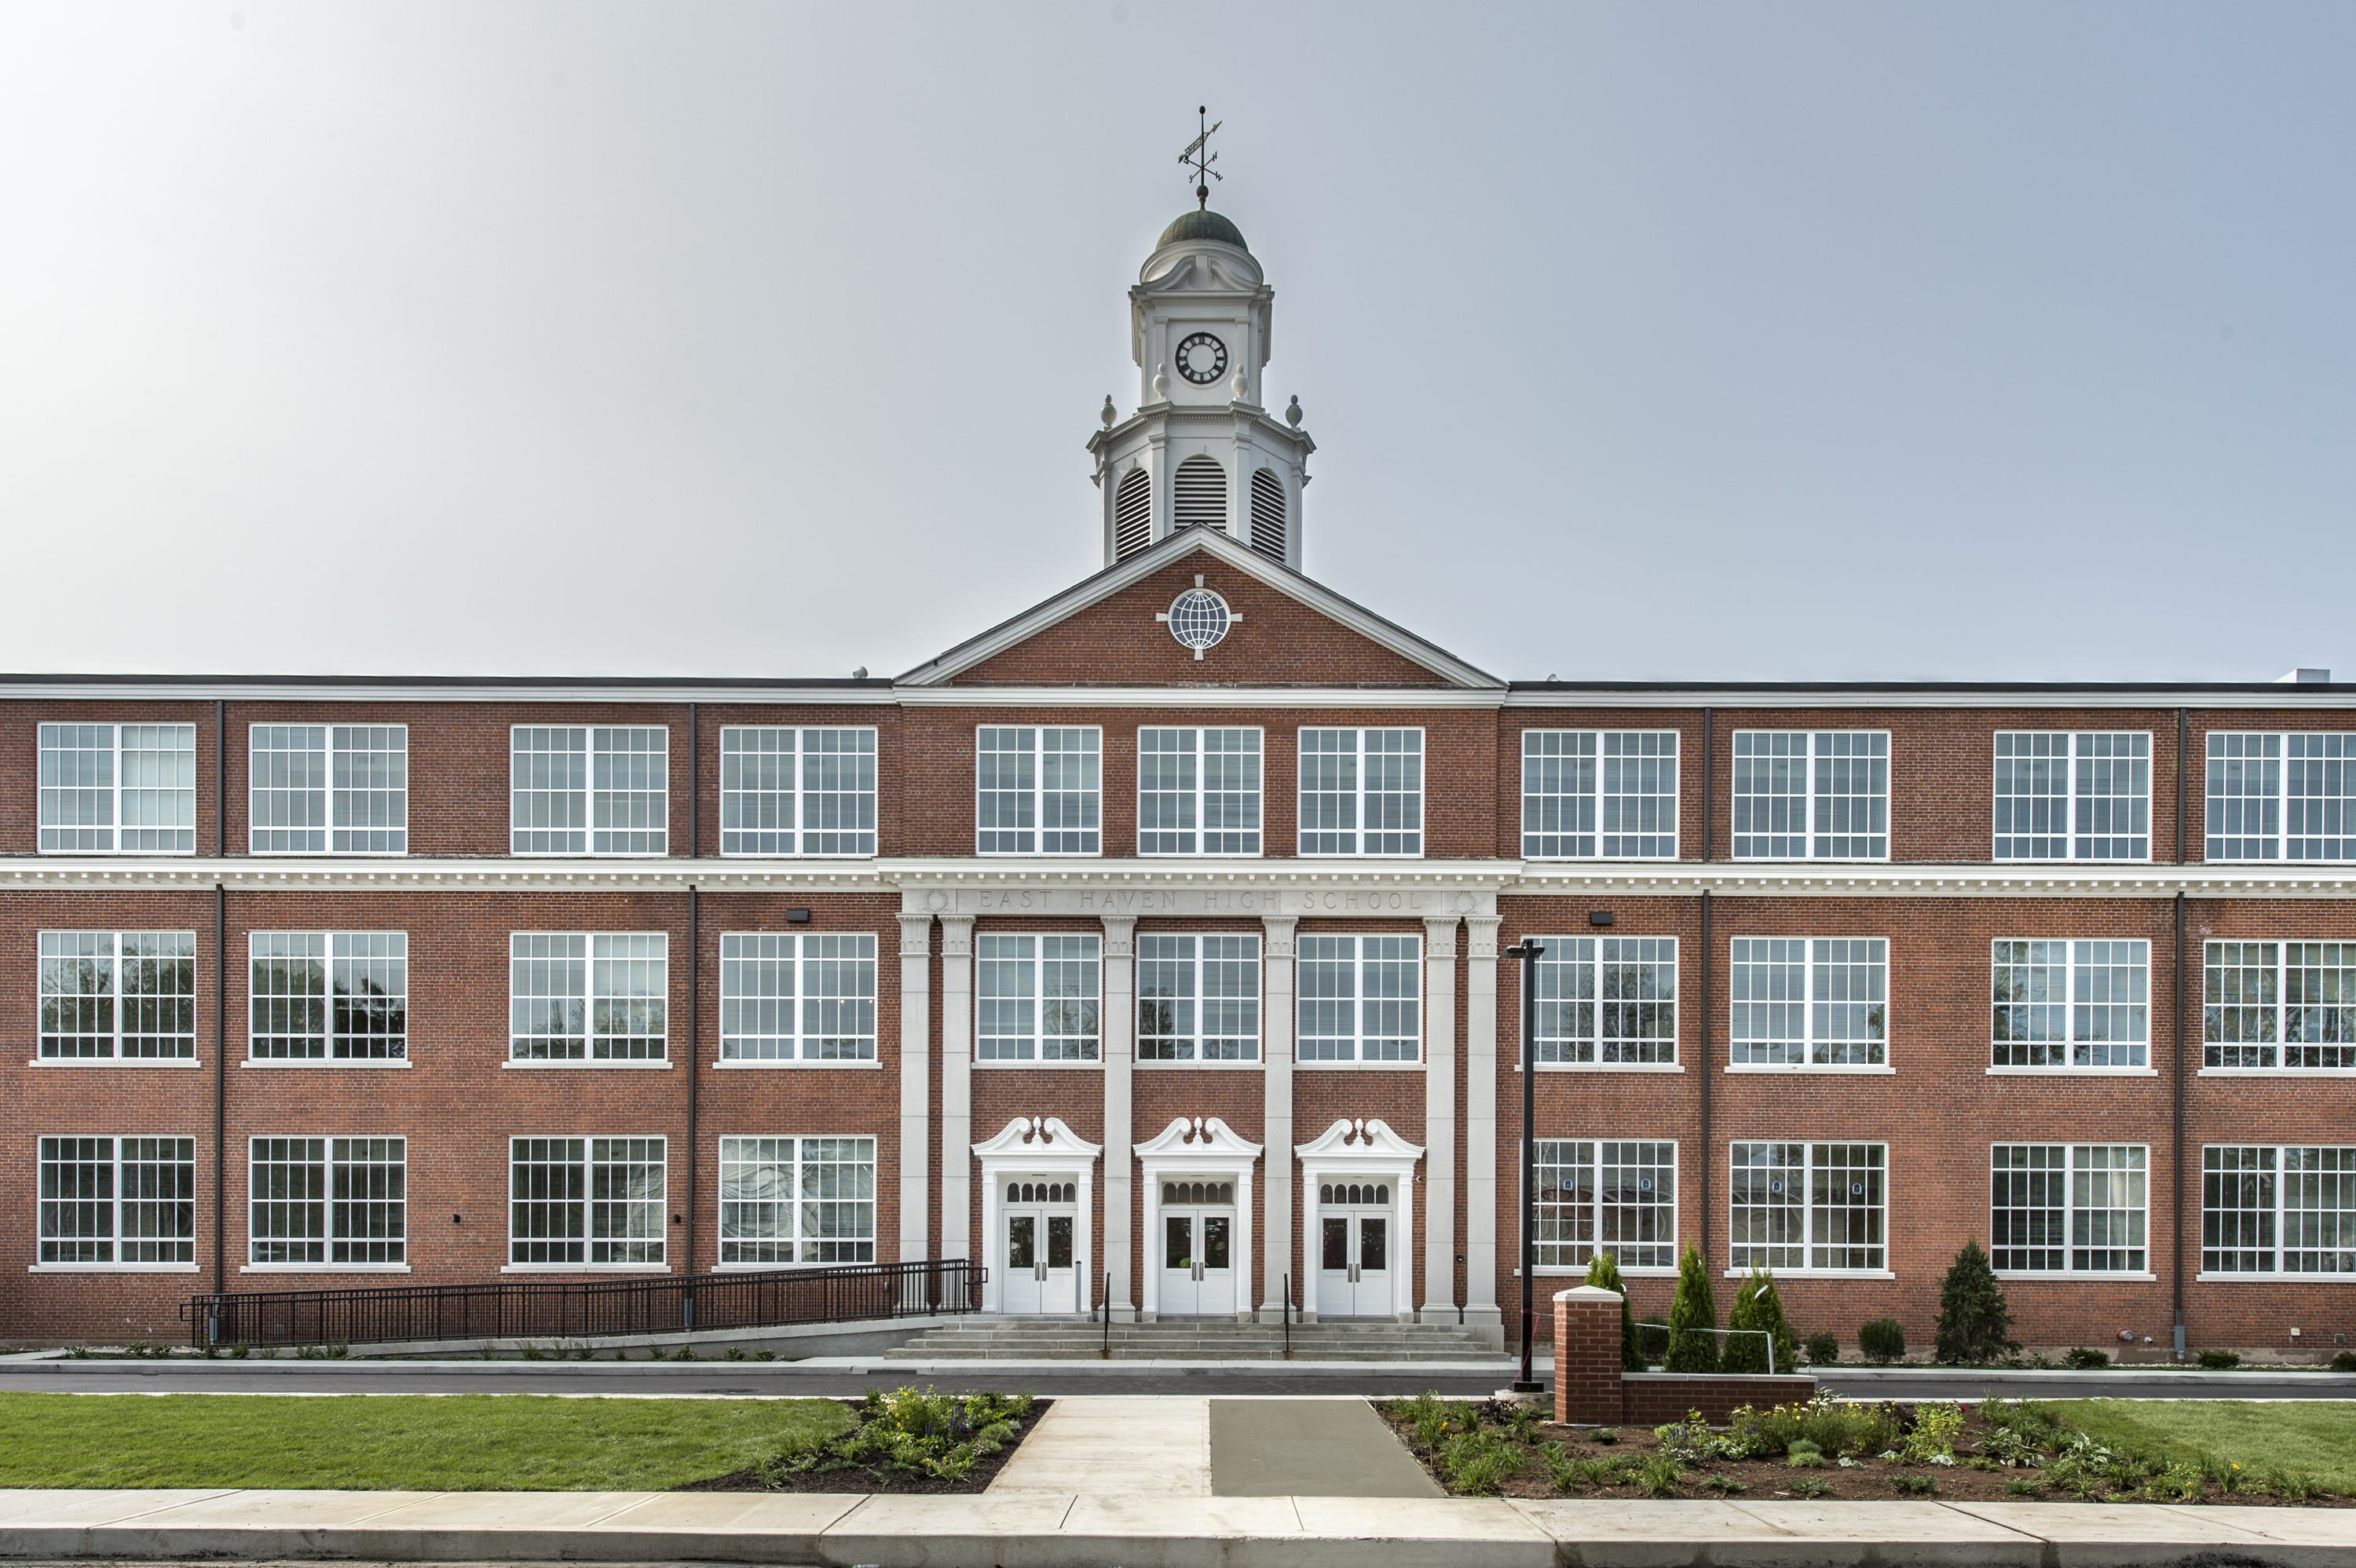 High School to Affordable Housing